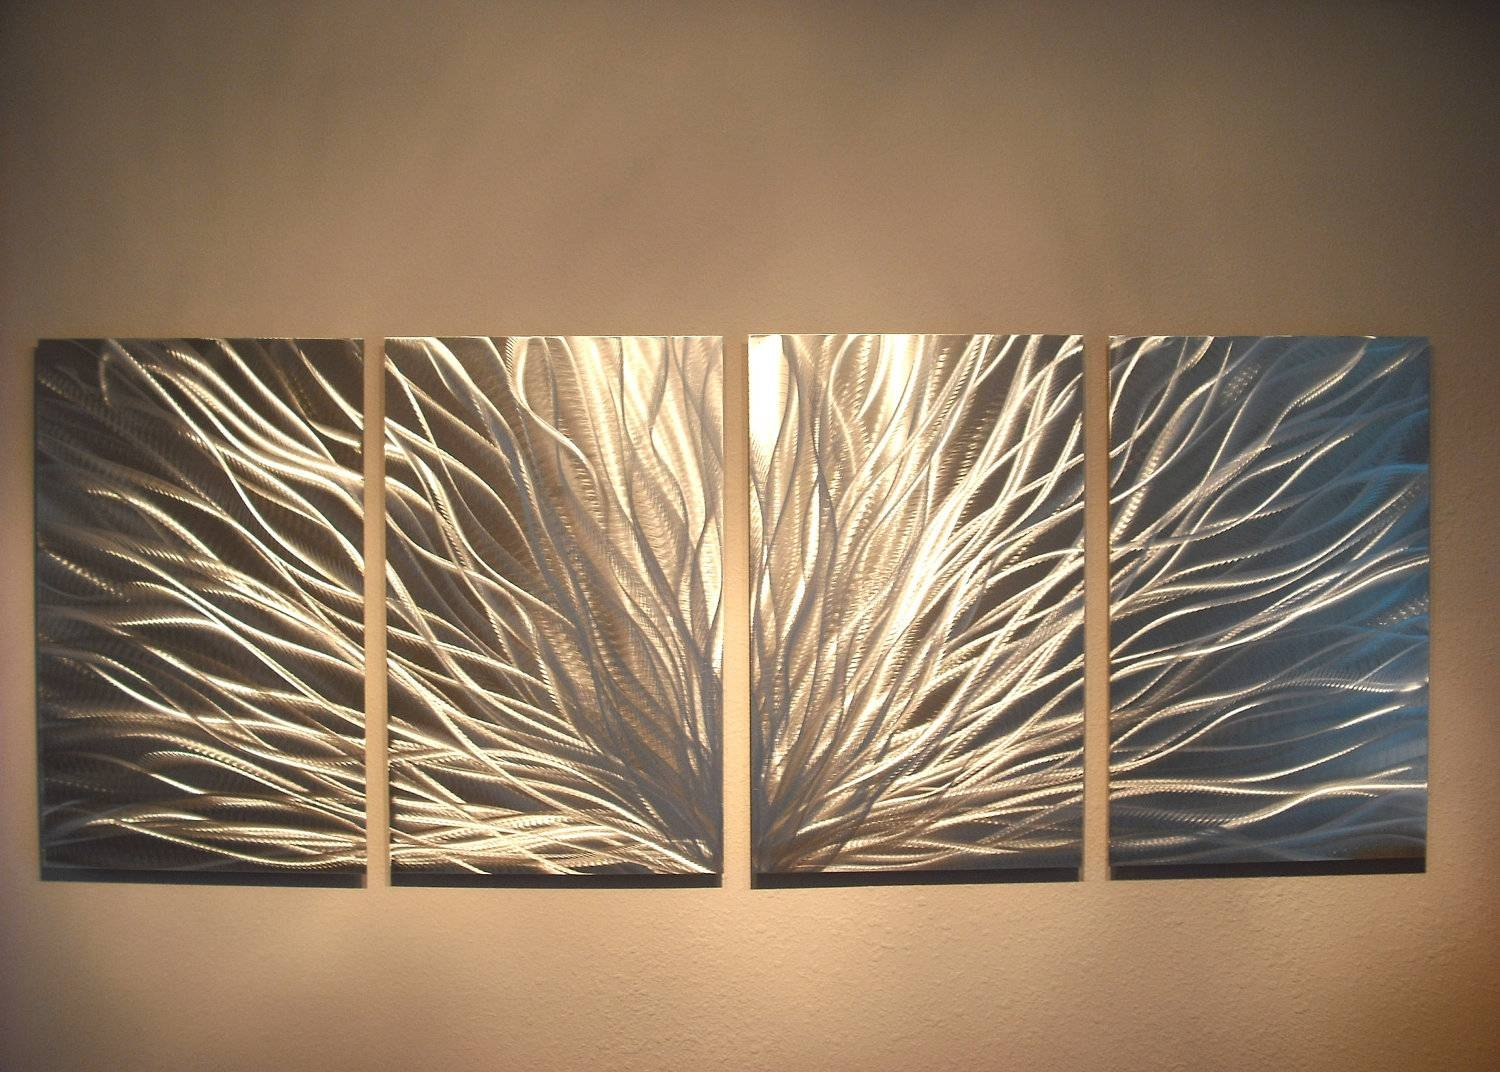 Radiance – Abstract Metal Wall Art Contemporary Modern Decor With Regard To Most Recently Released Contemporary Metal Wall Art (View 14 of 20)